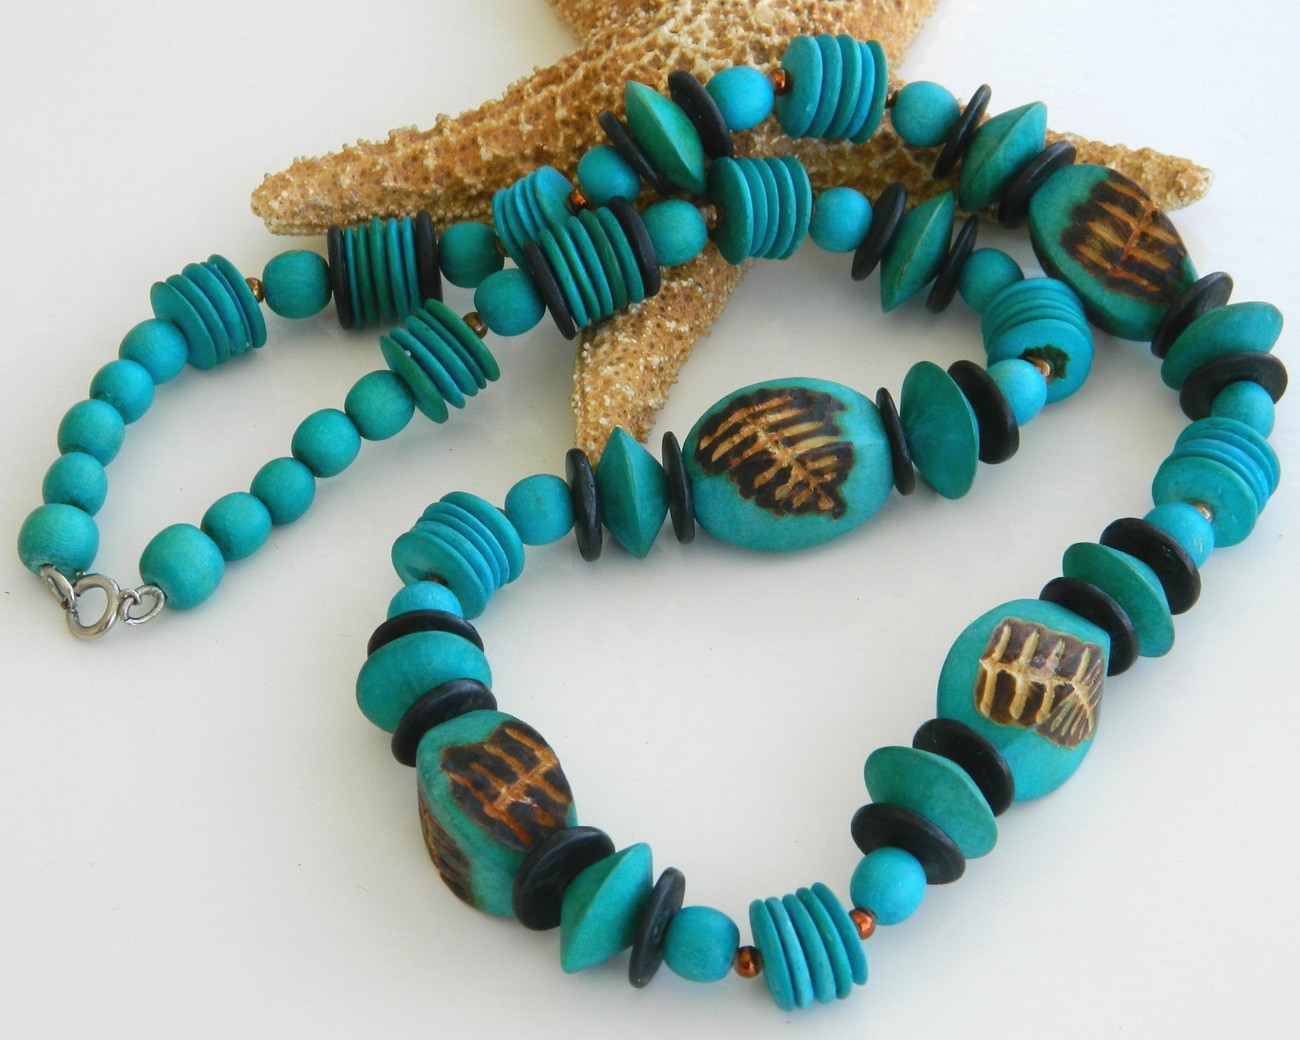 Vintage wood bead necklace turquoise wooden burnt